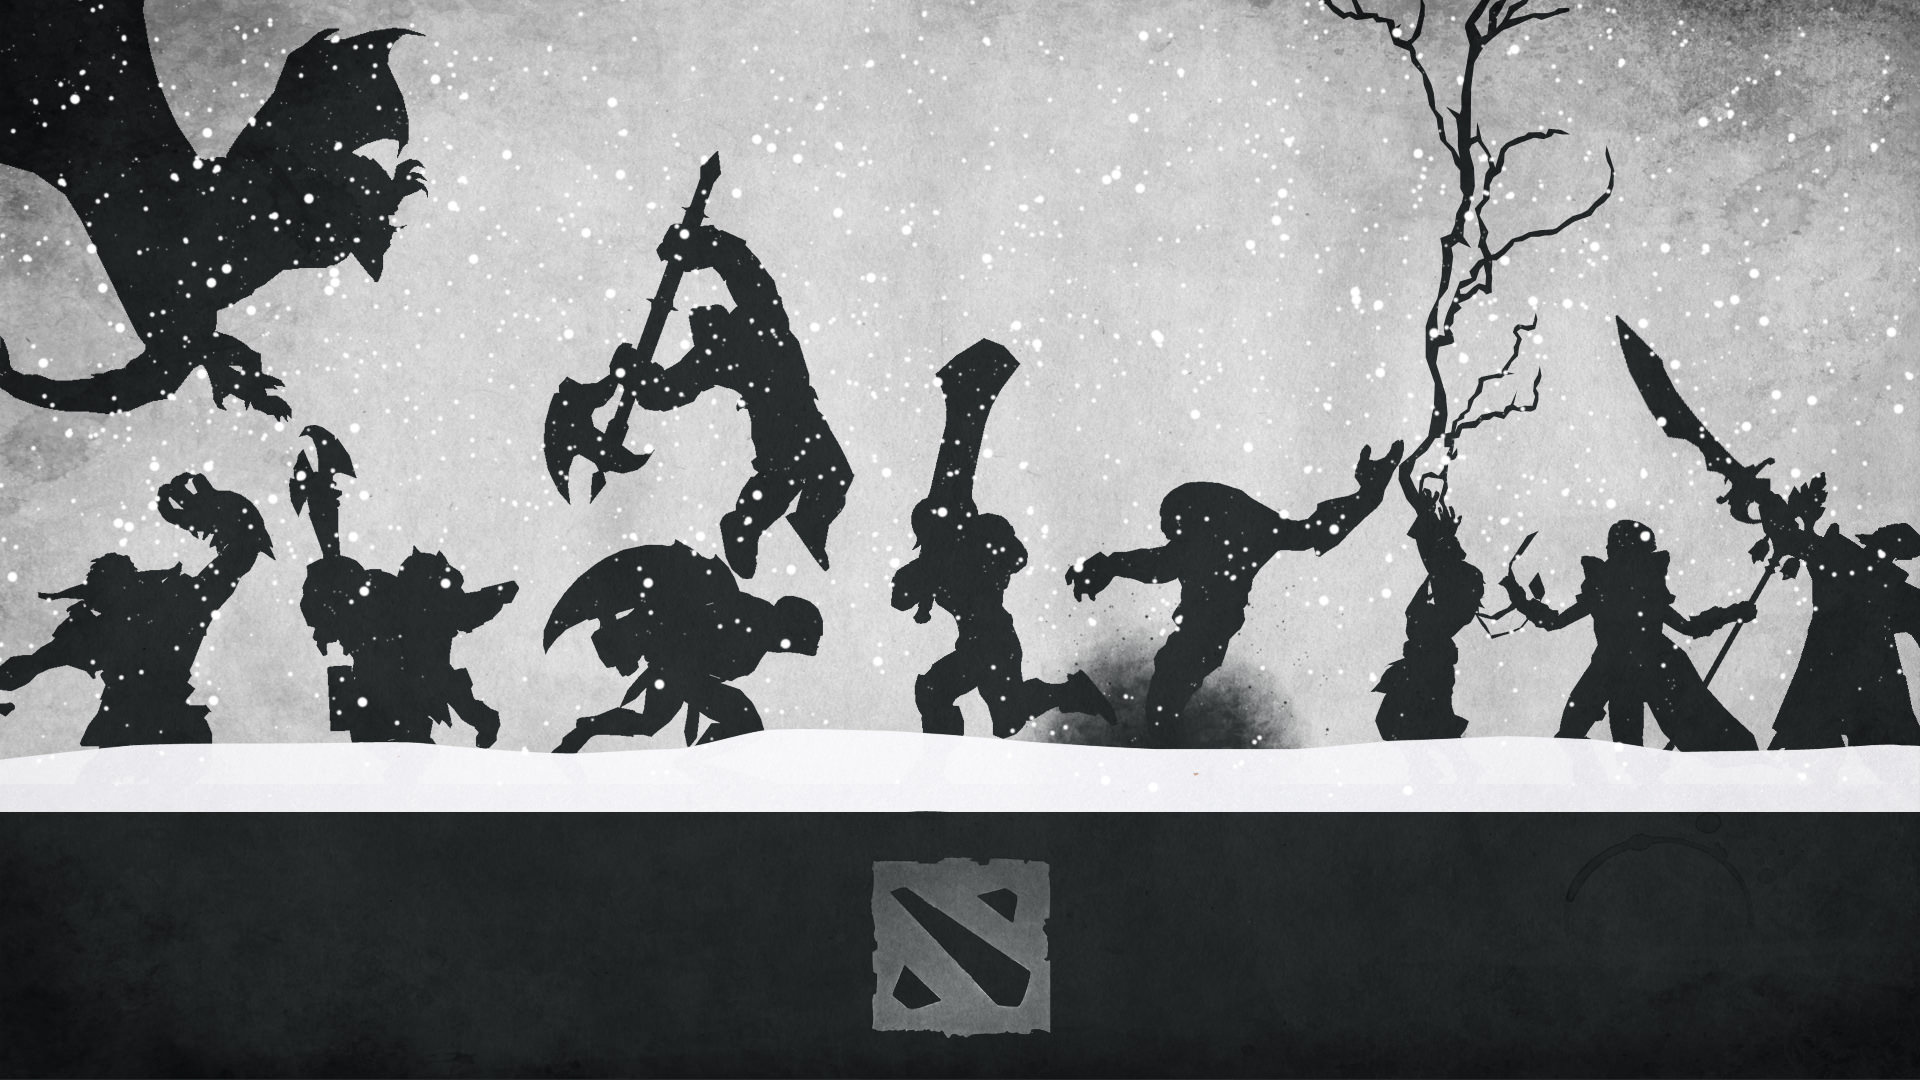 50 Beautiful Dota 2 Posters Amp Heroes Silhouette Hd Wallpapers Geckoandfly 2018